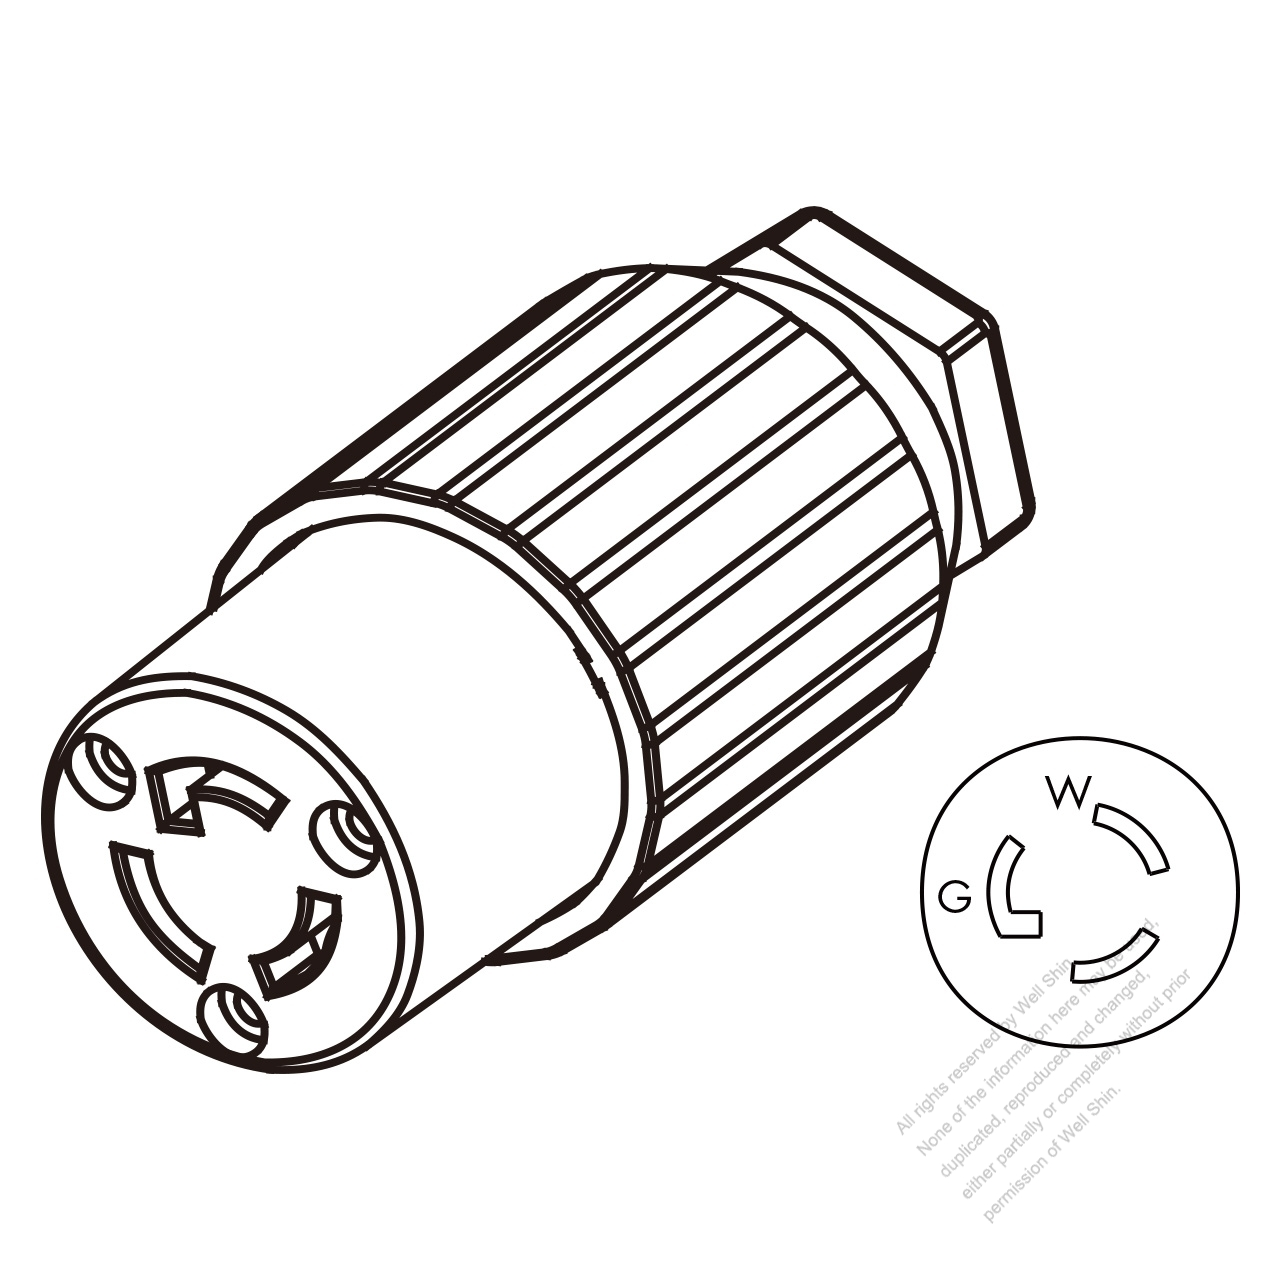 USA/Canada Twist-Lock Connector (NEMA L5-15R) 3-Pin